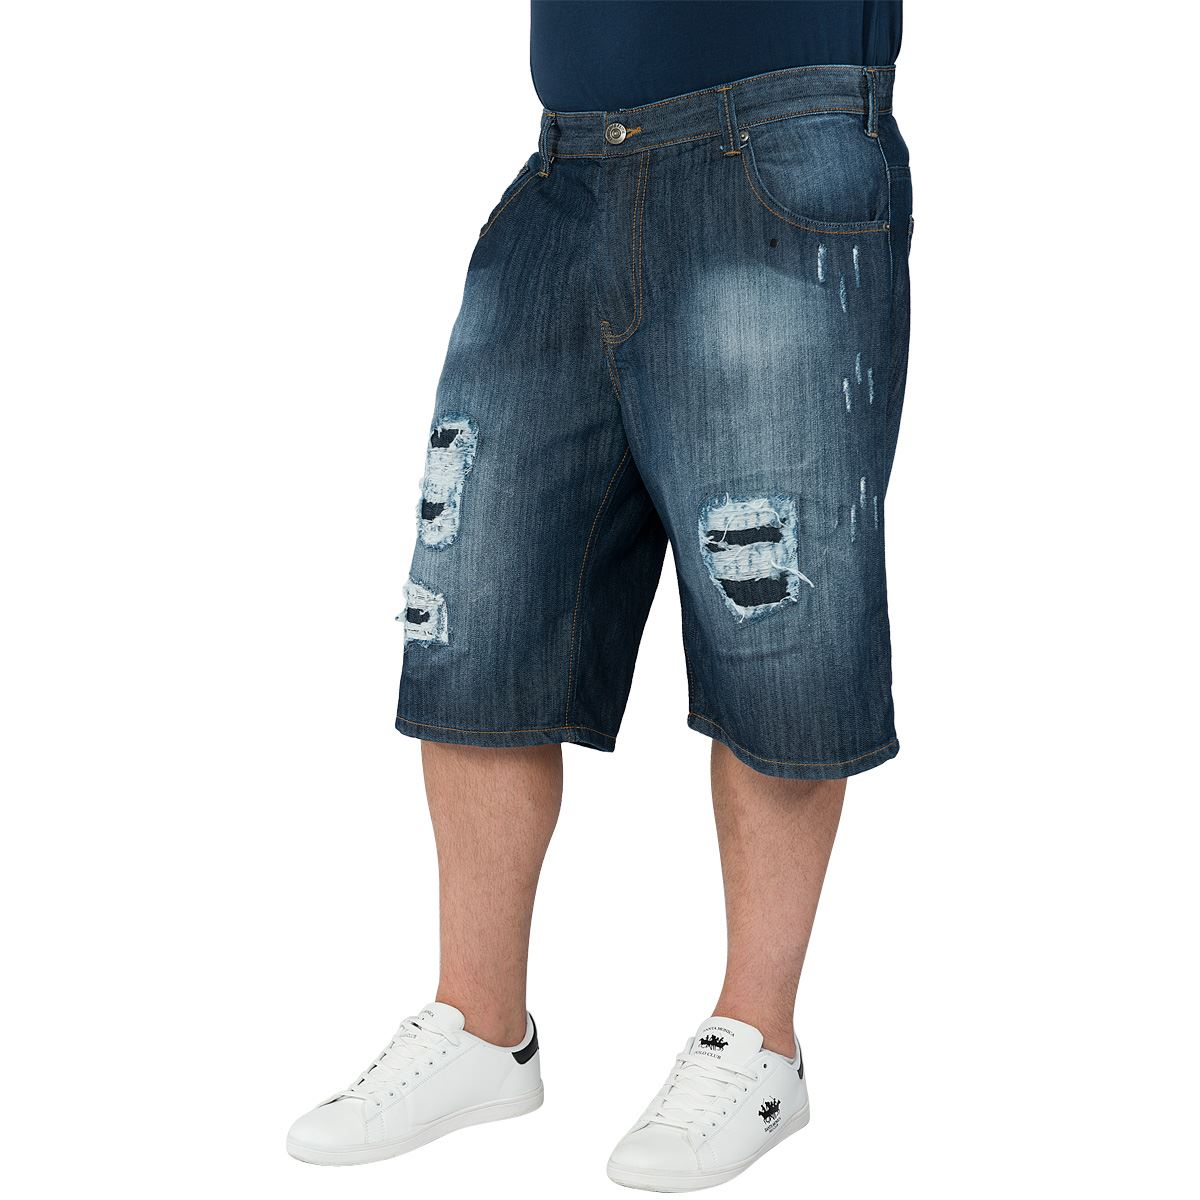 Silver Jeans Men's Taavi Slim Fit Skinny Leg Jeans, Medium Distressed Stretch, 31x Modern and close cut, the Taavi sits just below the waist and features a slim fit through the hip and thigh. It's designed with just a bit of stretch for a comfortable feel.